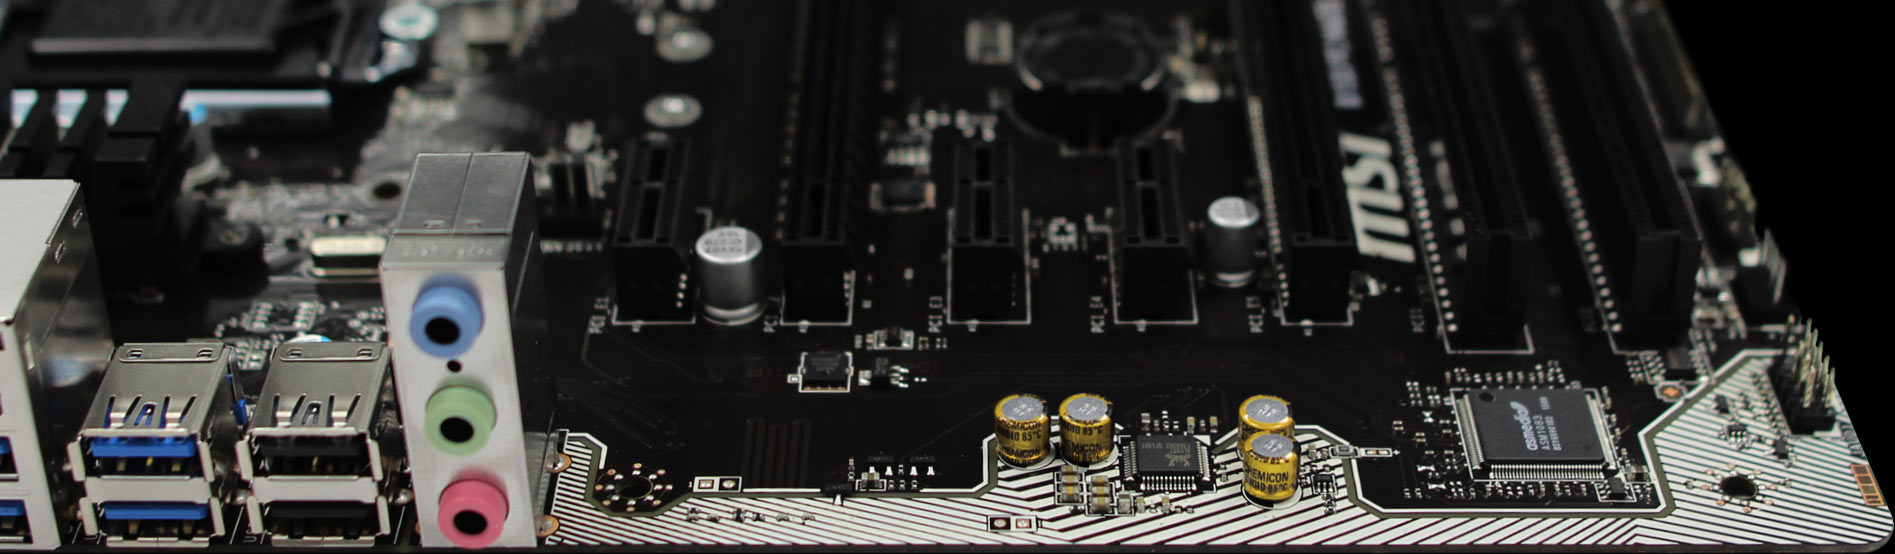 Z170-A PRO | Motherboard - The world leader in motherboard